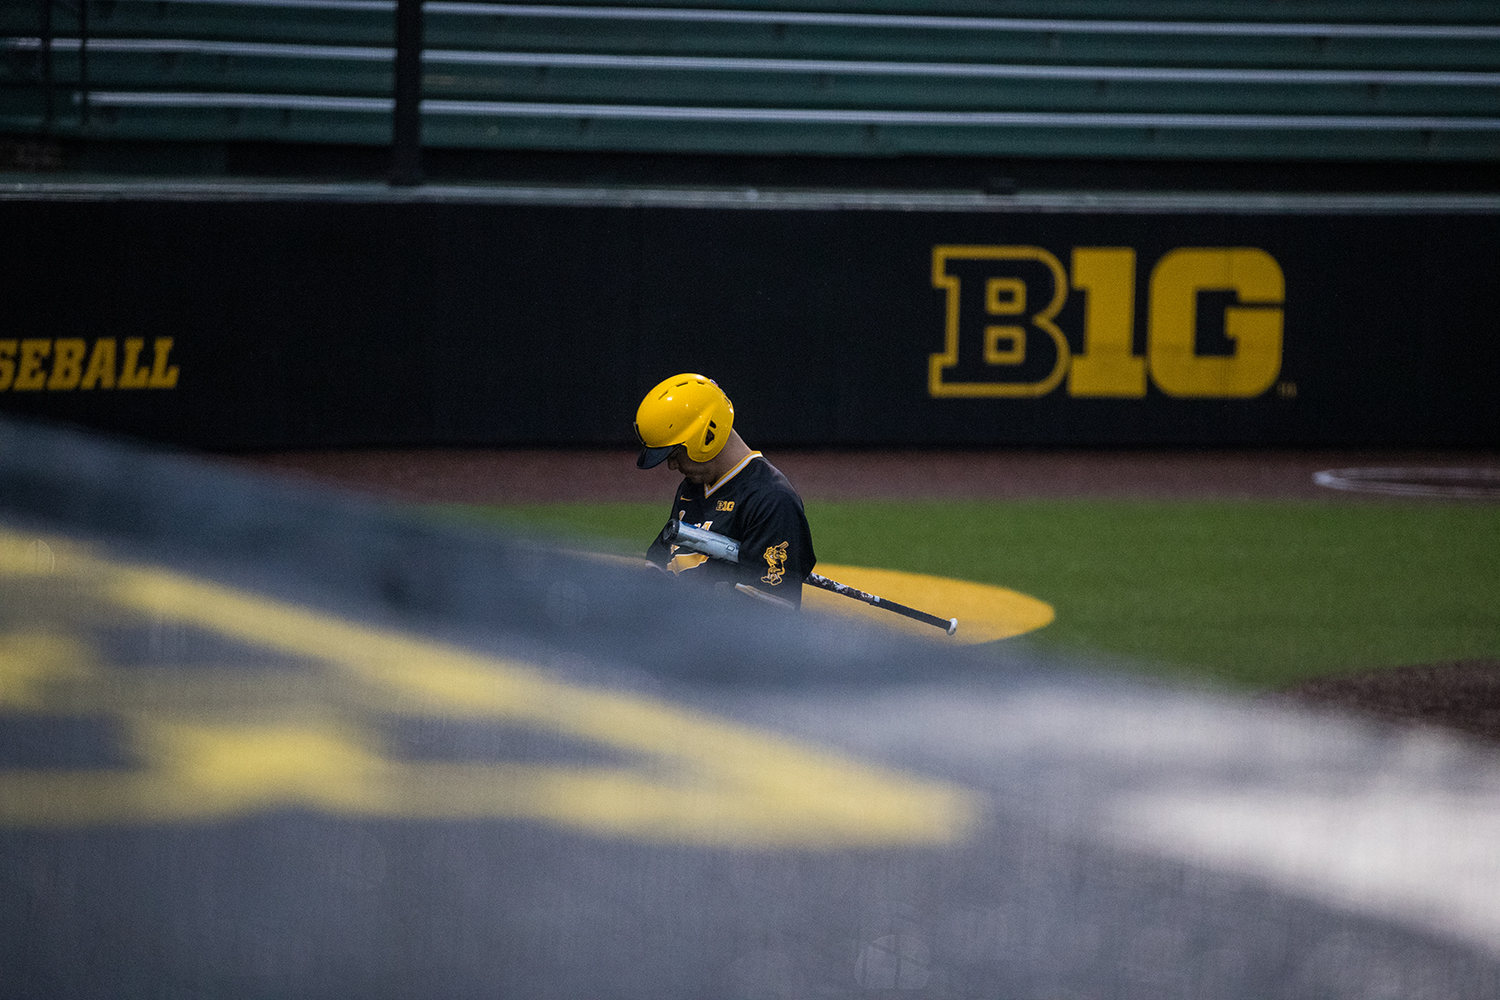 Iowa%27s+Like+Farley+walks+towards+the+dugout+after+getting+struckout+during+a+baseball+game+against+Illinois+State+on+Wednesday%2C+Apr.+3%2C+2019.+The+Hawkeyes+lost+to+the+Redbirds+11-6.+%28Roman+Slabach%2FThe+Daily+Iowan%29